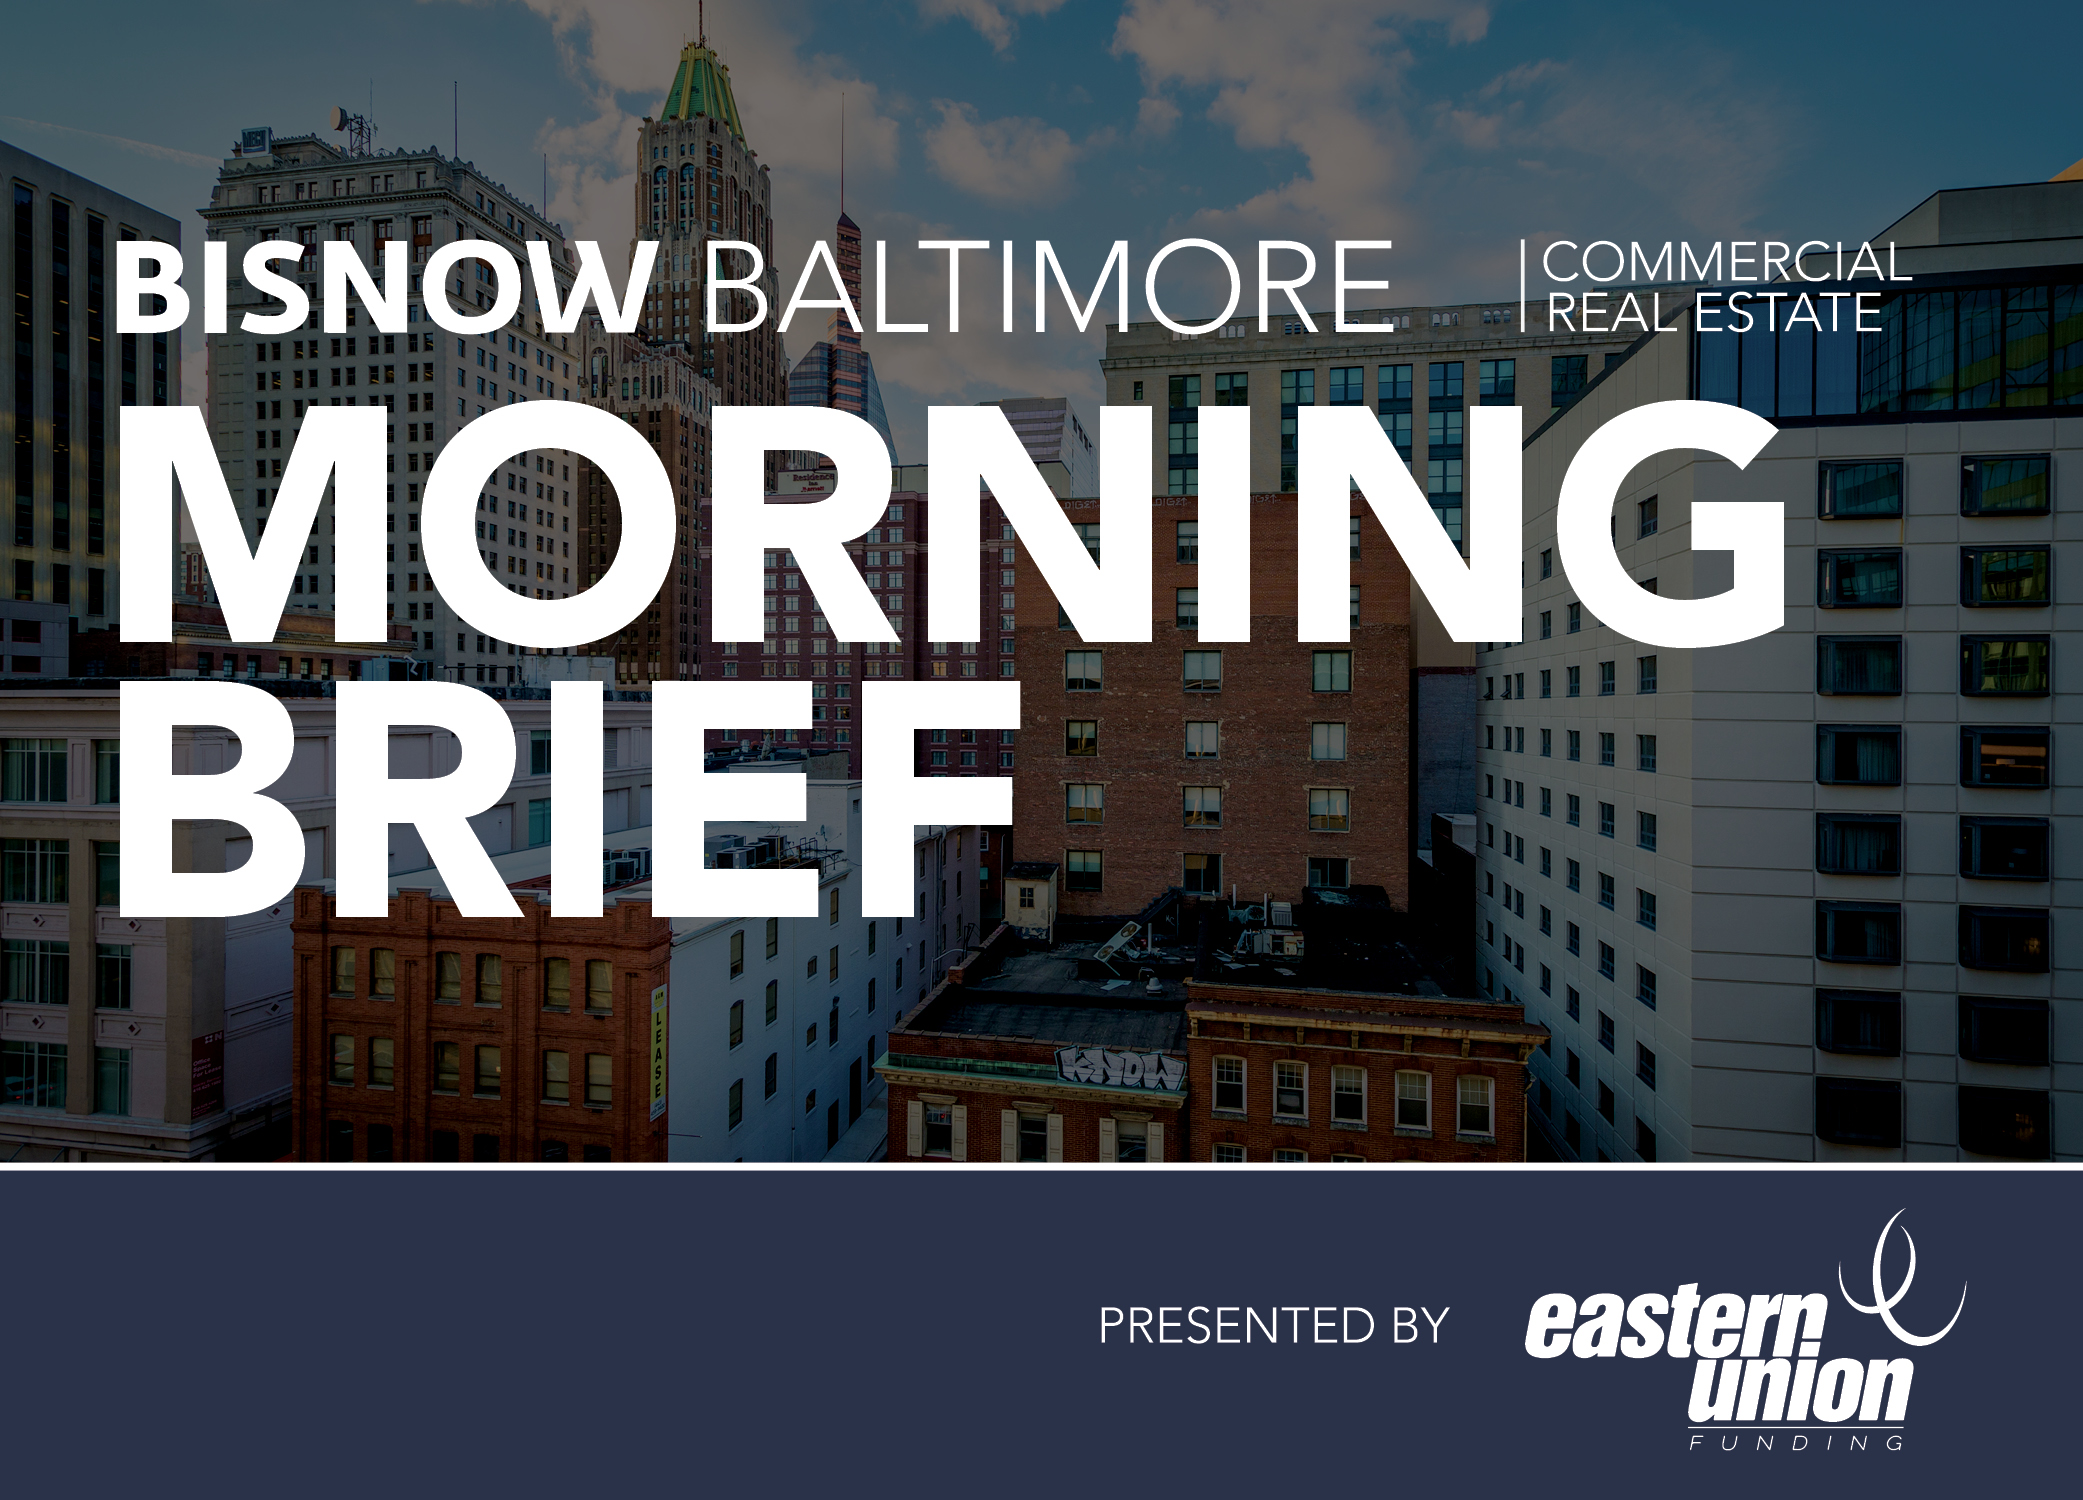 Bisnow Morning Brief Baltimore